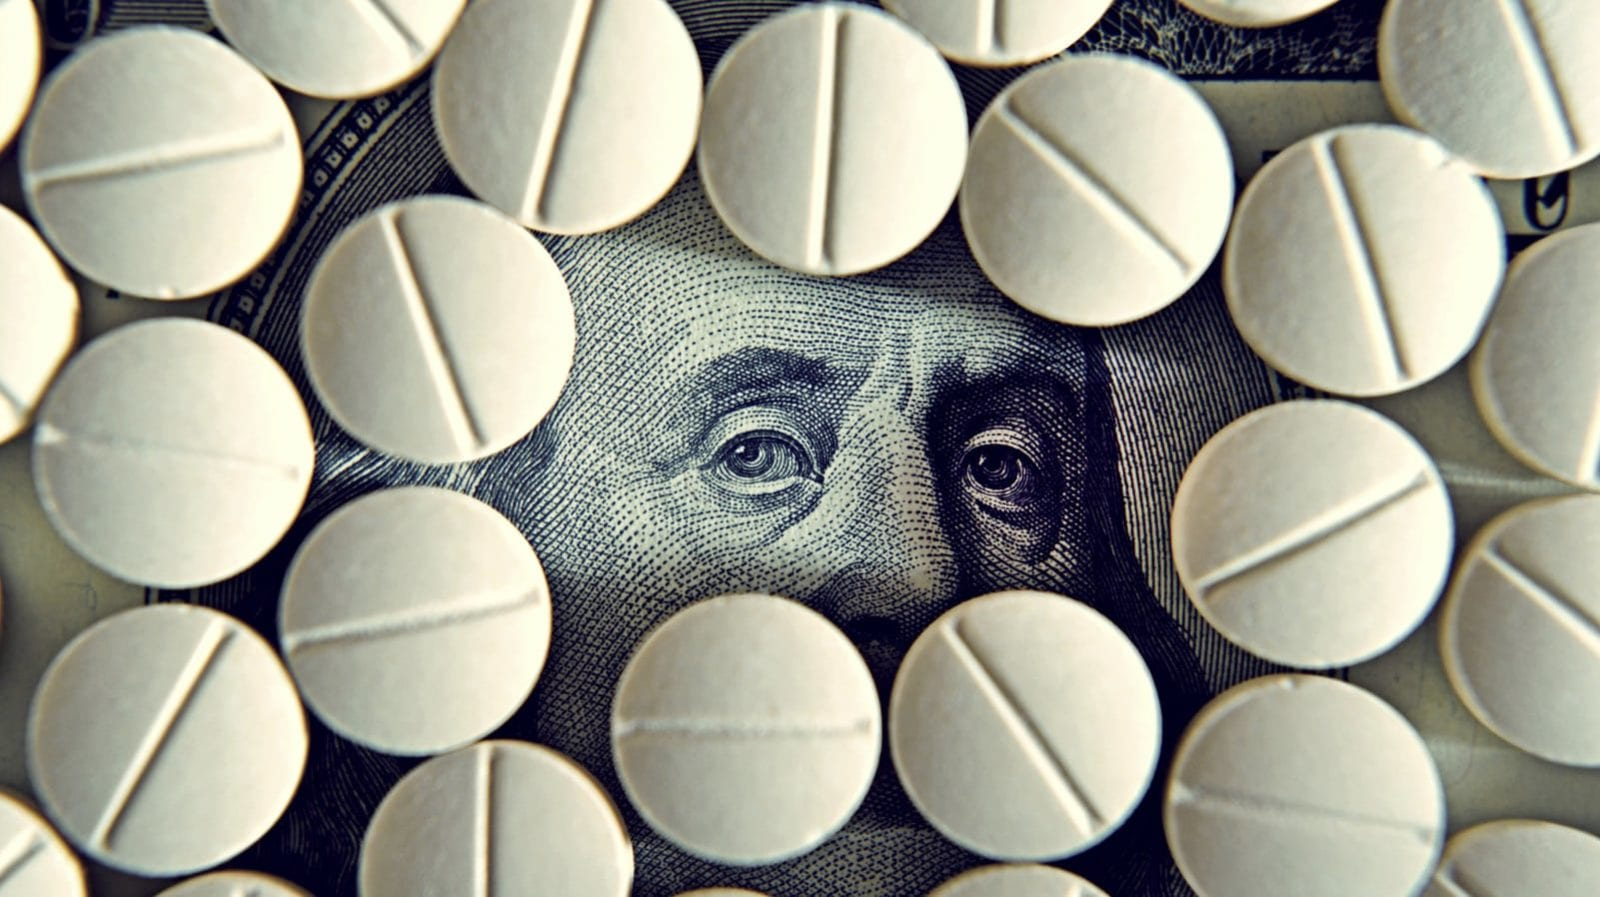 Is big pharma a little too cozy with the FDA?